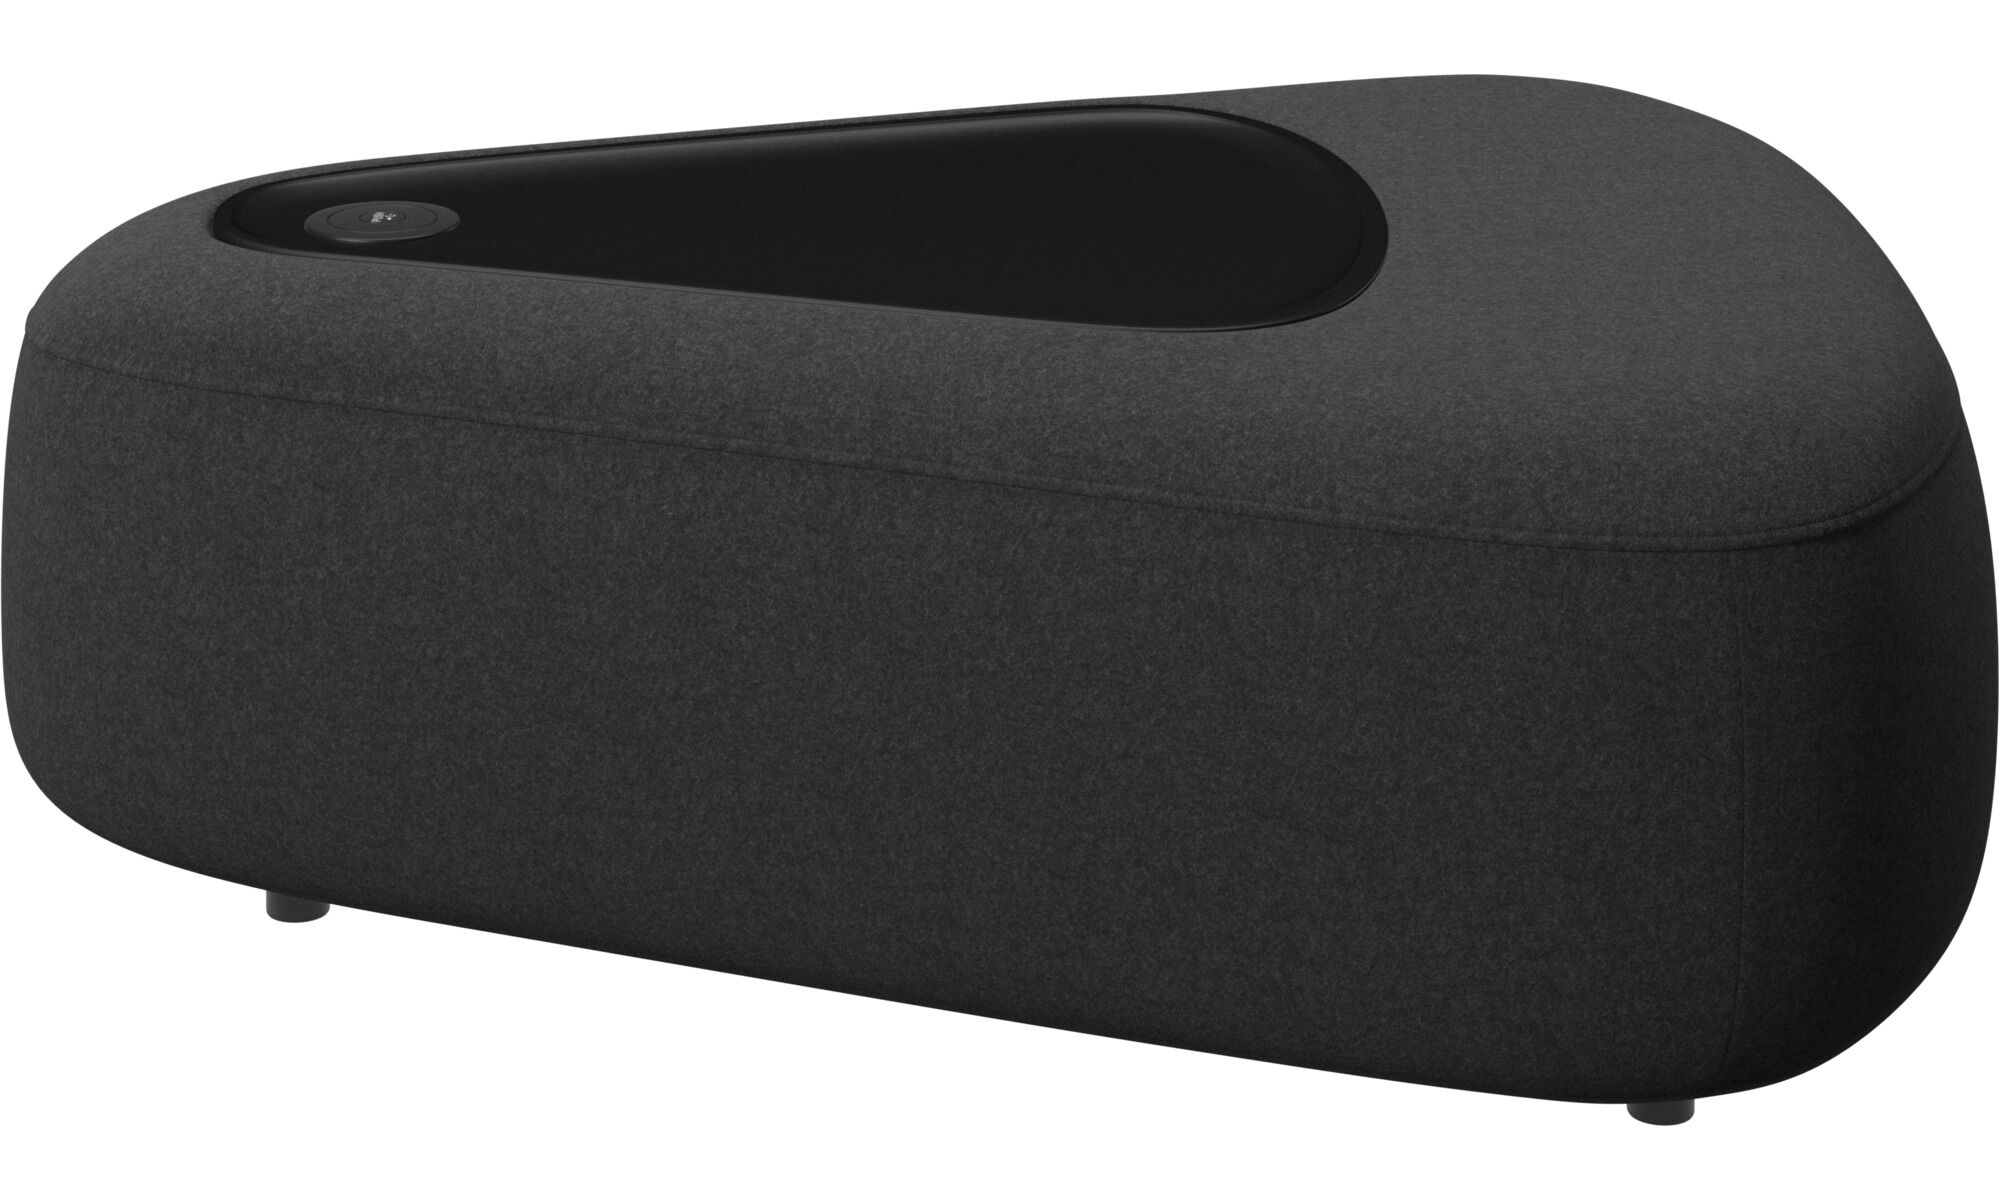 Ottawa triangular pouf with tray and USB charger